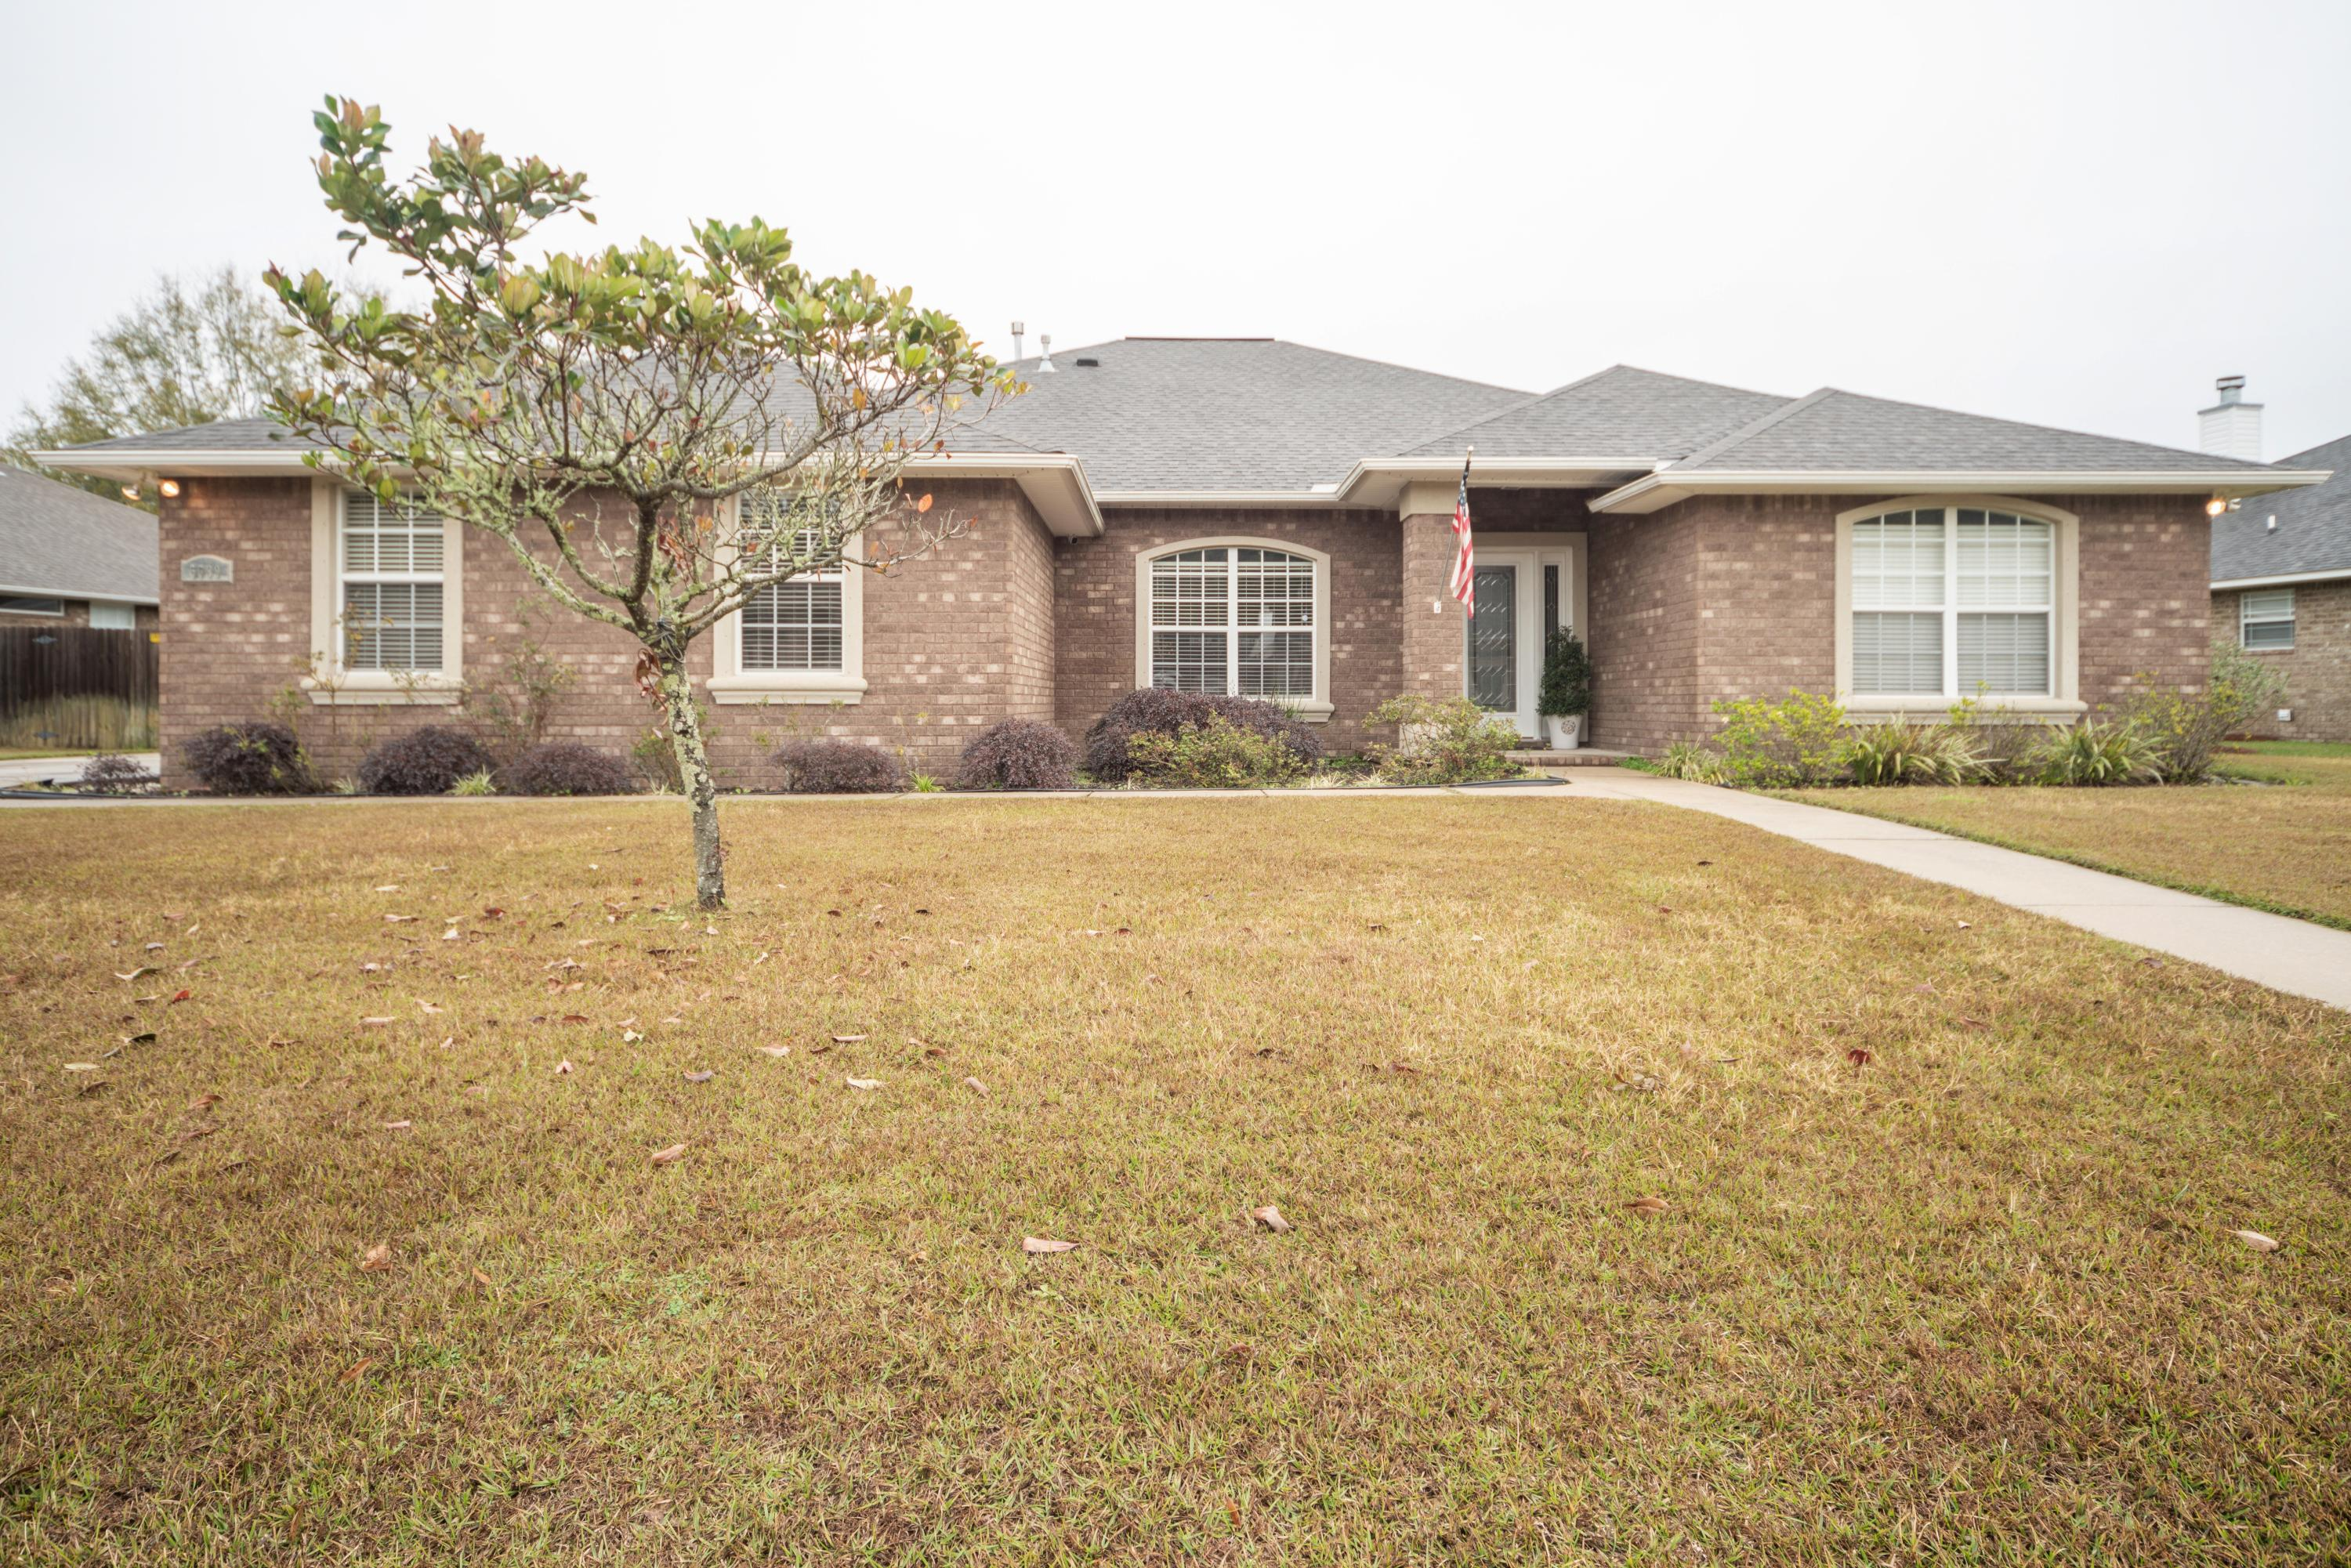 Welcome home to this 4 bedroom 3 bath brick ranch located in a gated community across the street fro